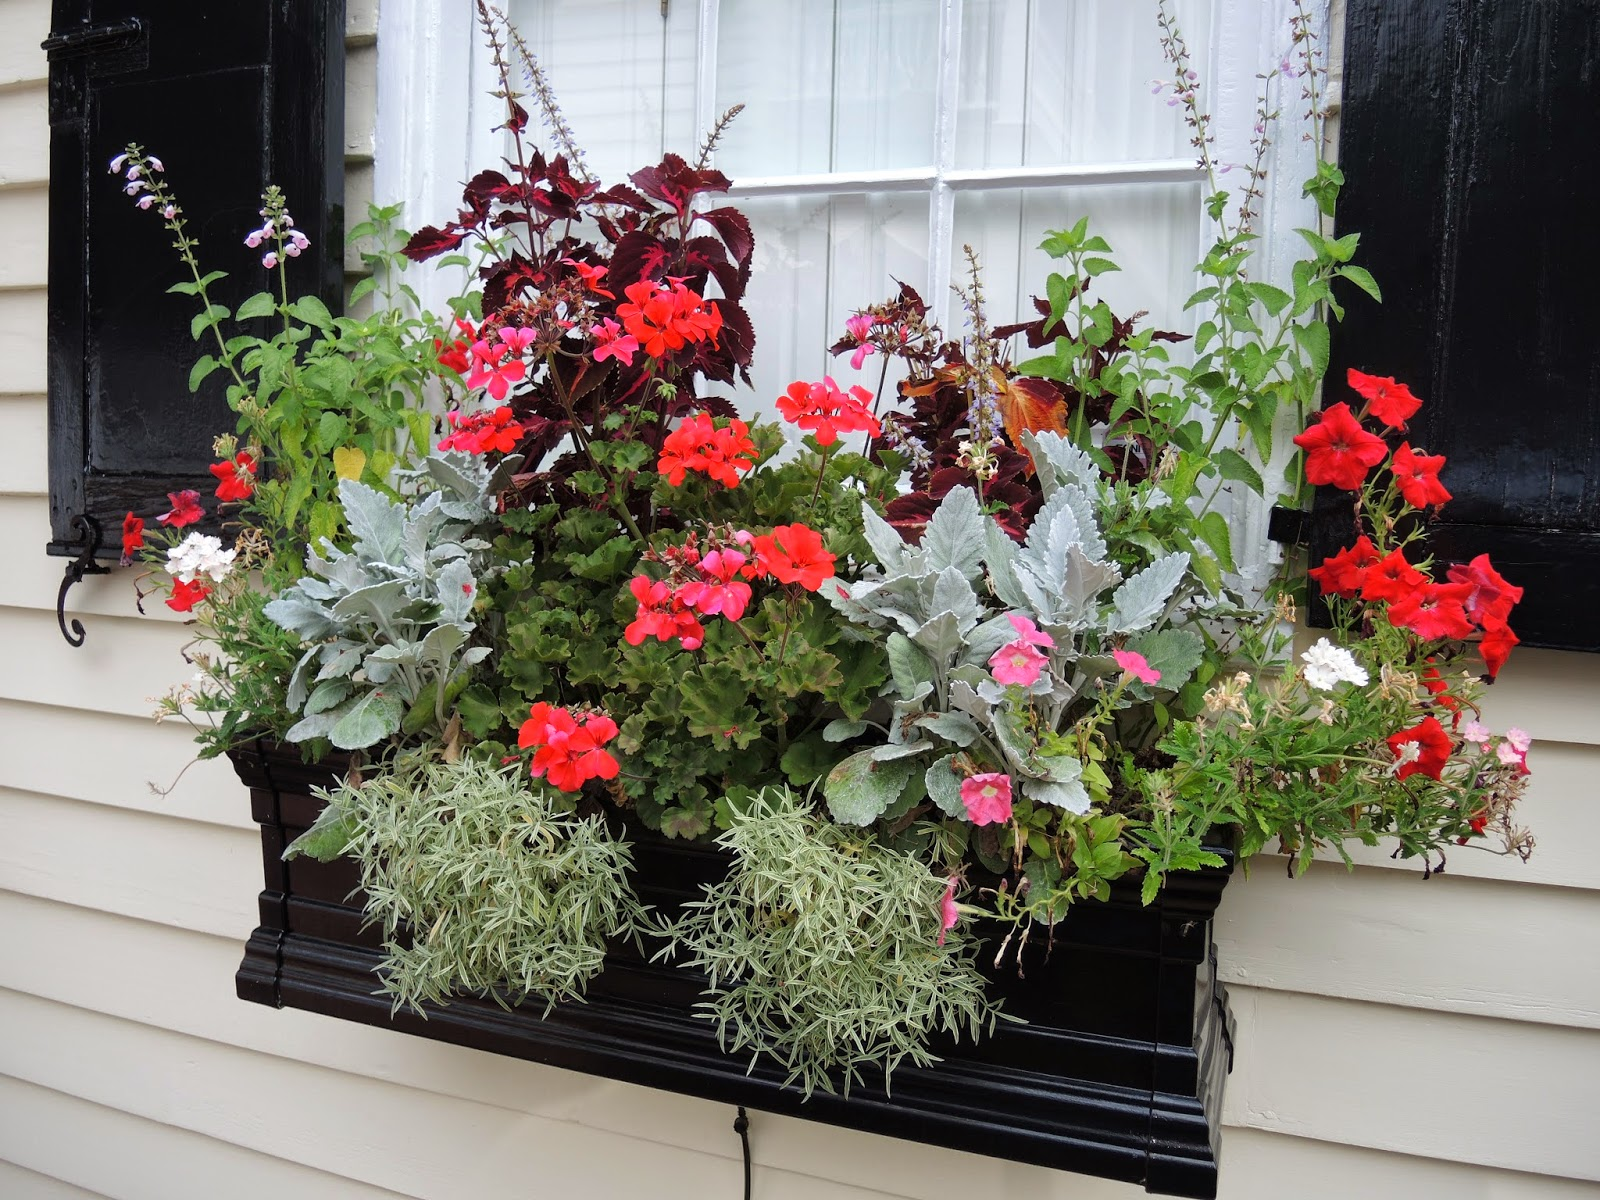 begonias window box flowers charleston sc downtown historic home